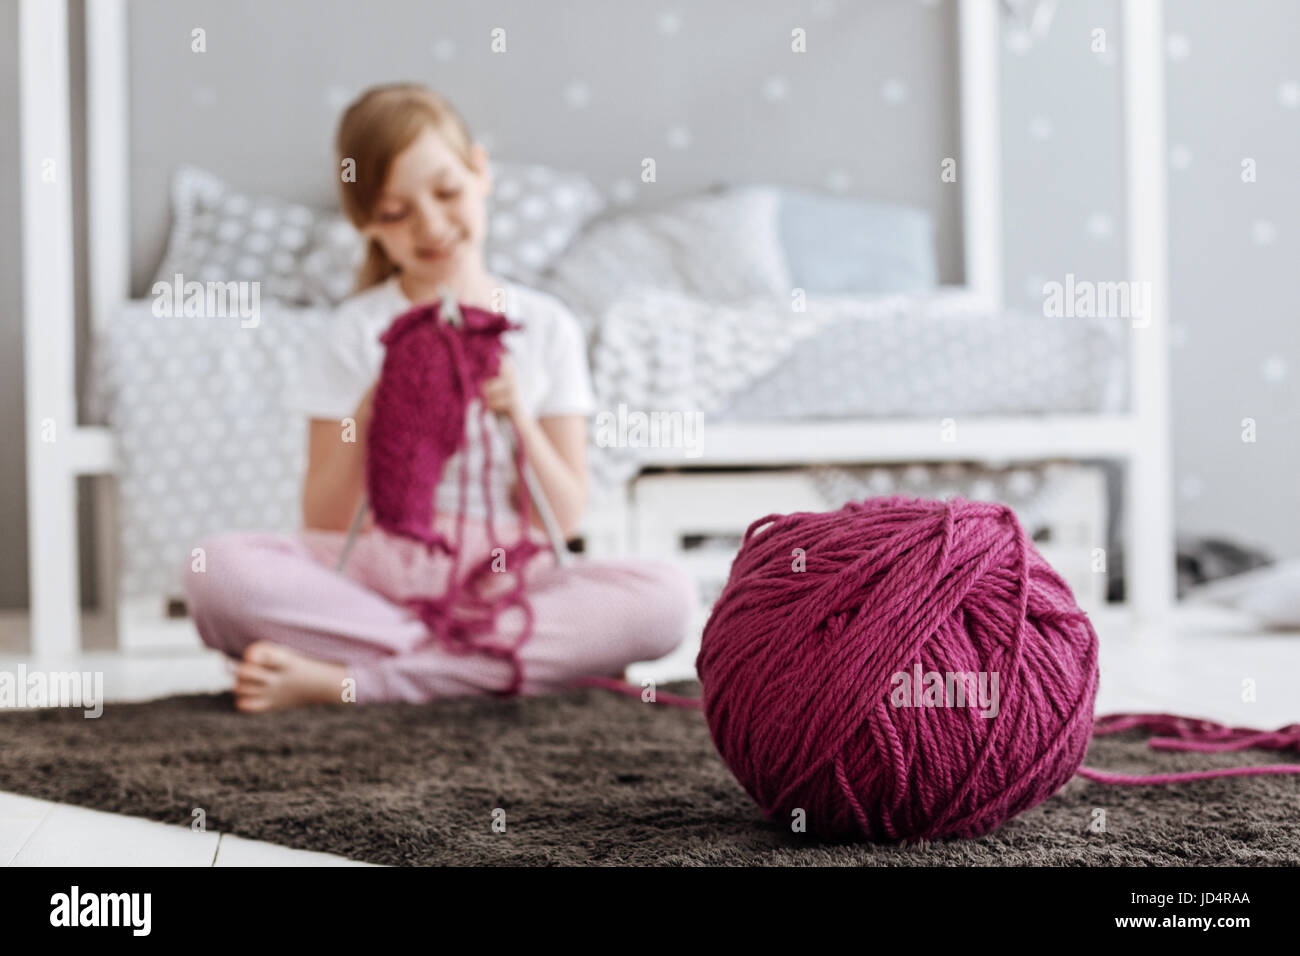 Cute diligent little girl knitting something - Stock Image